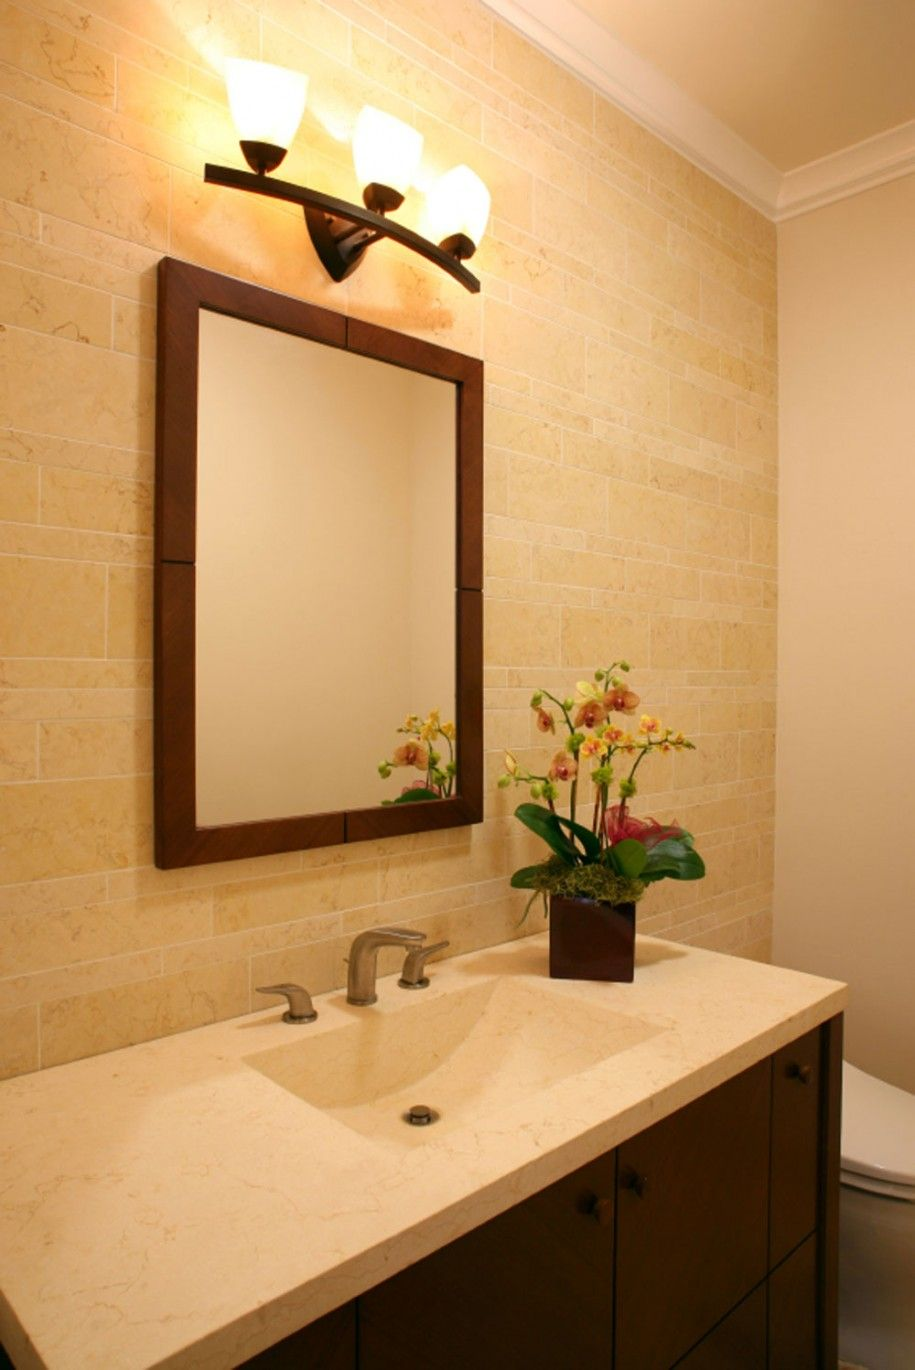 Classic Wall Lamp Bathroom Lighting Decorating Ideas with Simple ...